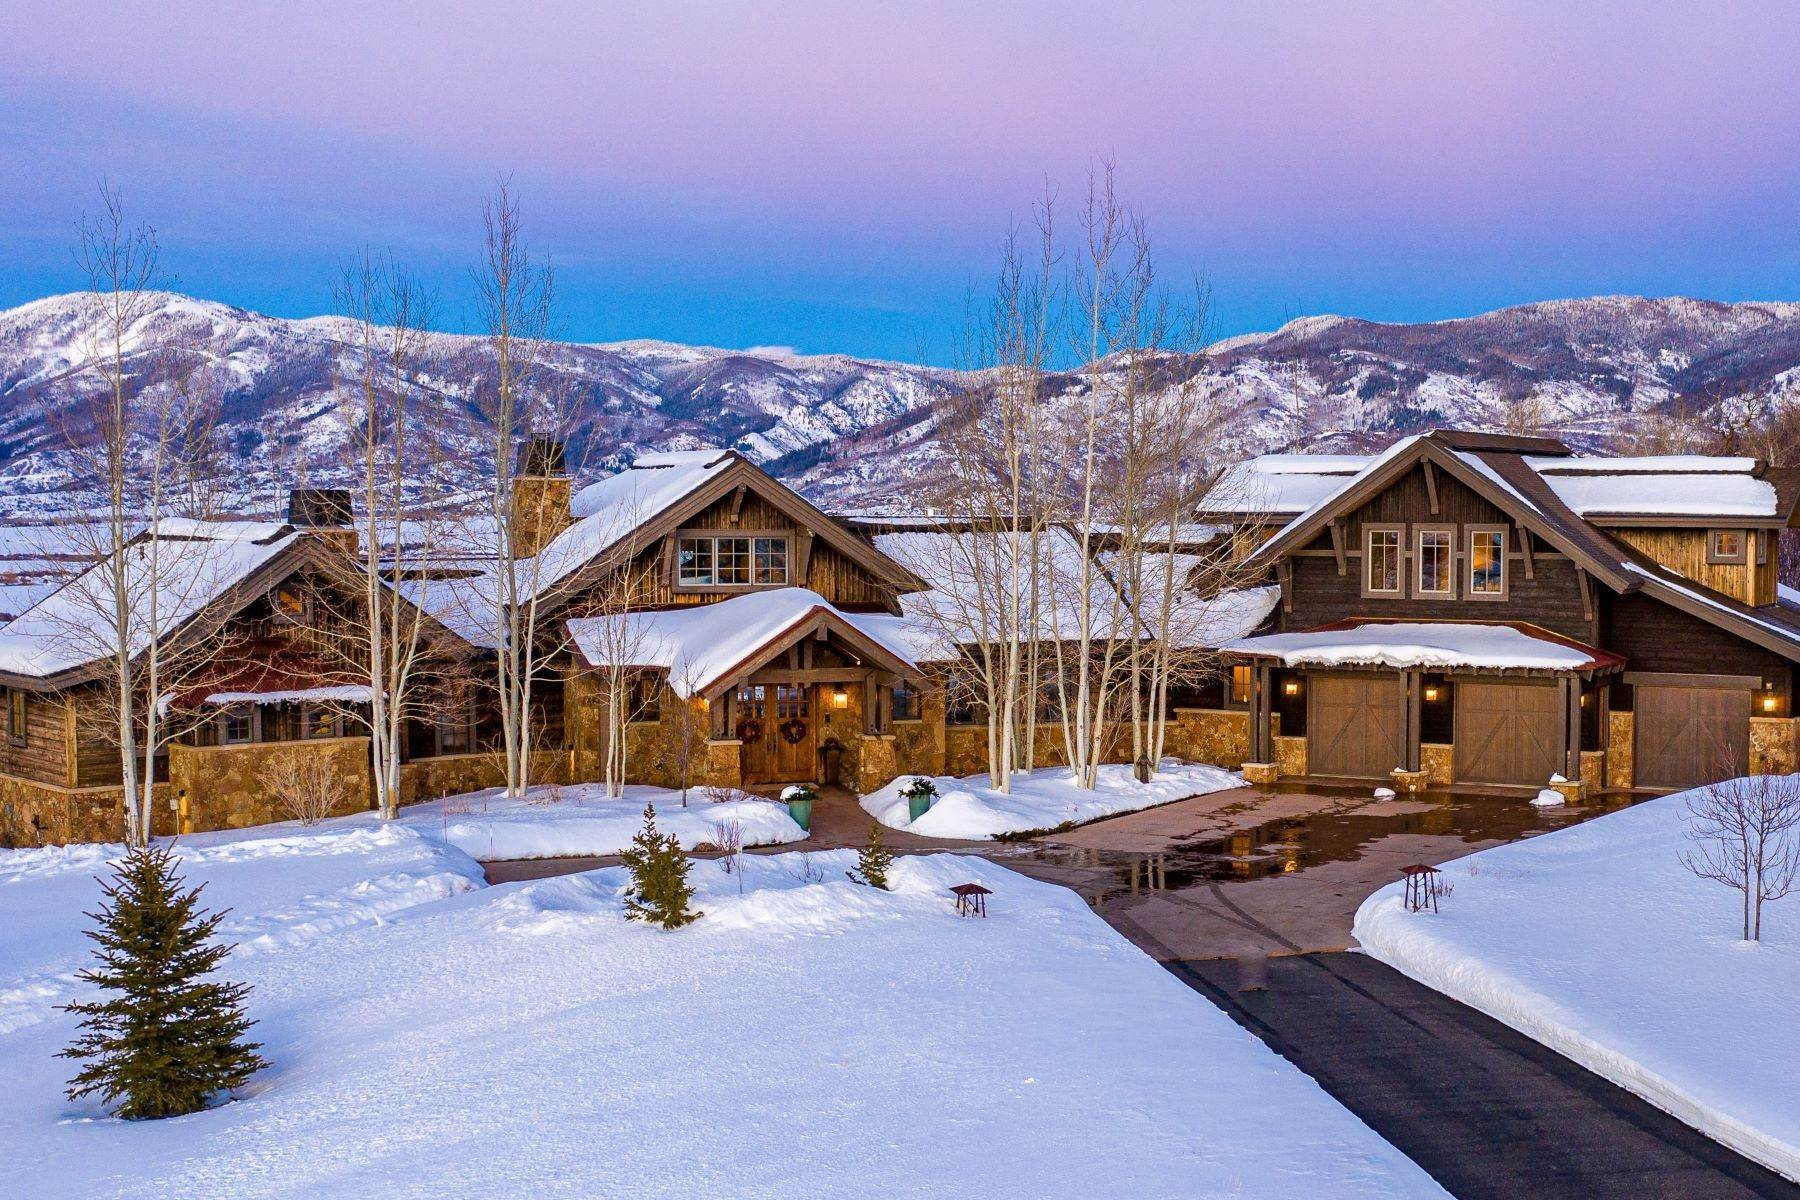 Single Family Homes for Active at Sidney Peak View Home 30650 Marshall Ridge Steamboat Springs, Colorado 80487 United States